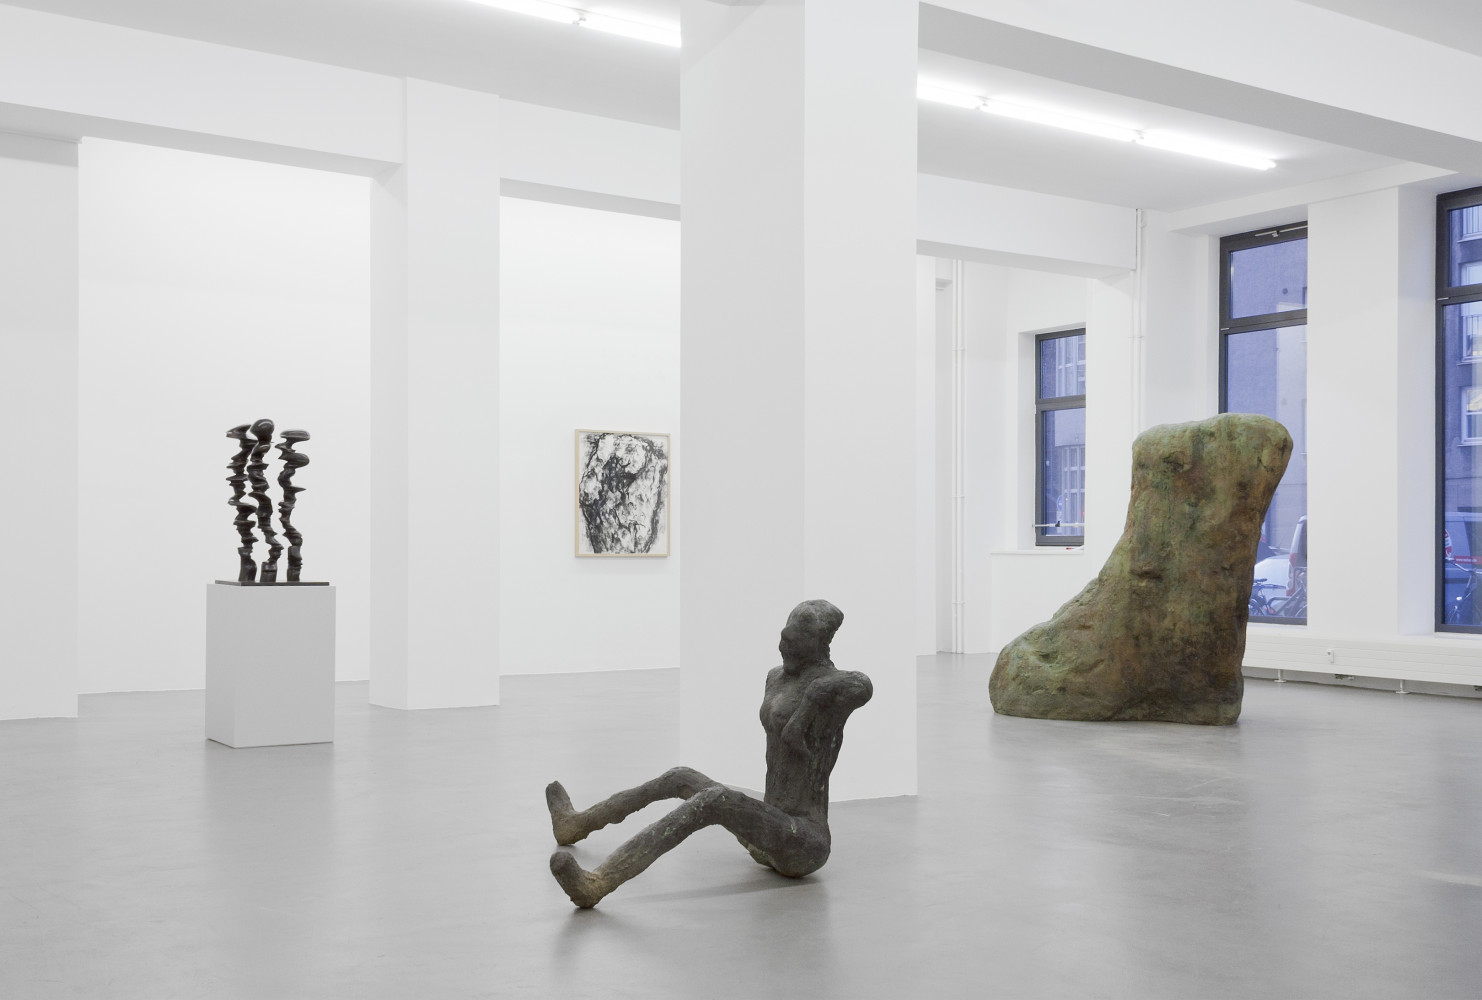 Tony Cragg, Martin Disler, William Tucker, 'Figure – Tony Cragg - Martin Disler - Medardo Rosso - William Tucker - Rebecca Warren', Installation view, Buchmann Galerie, 2015–2016